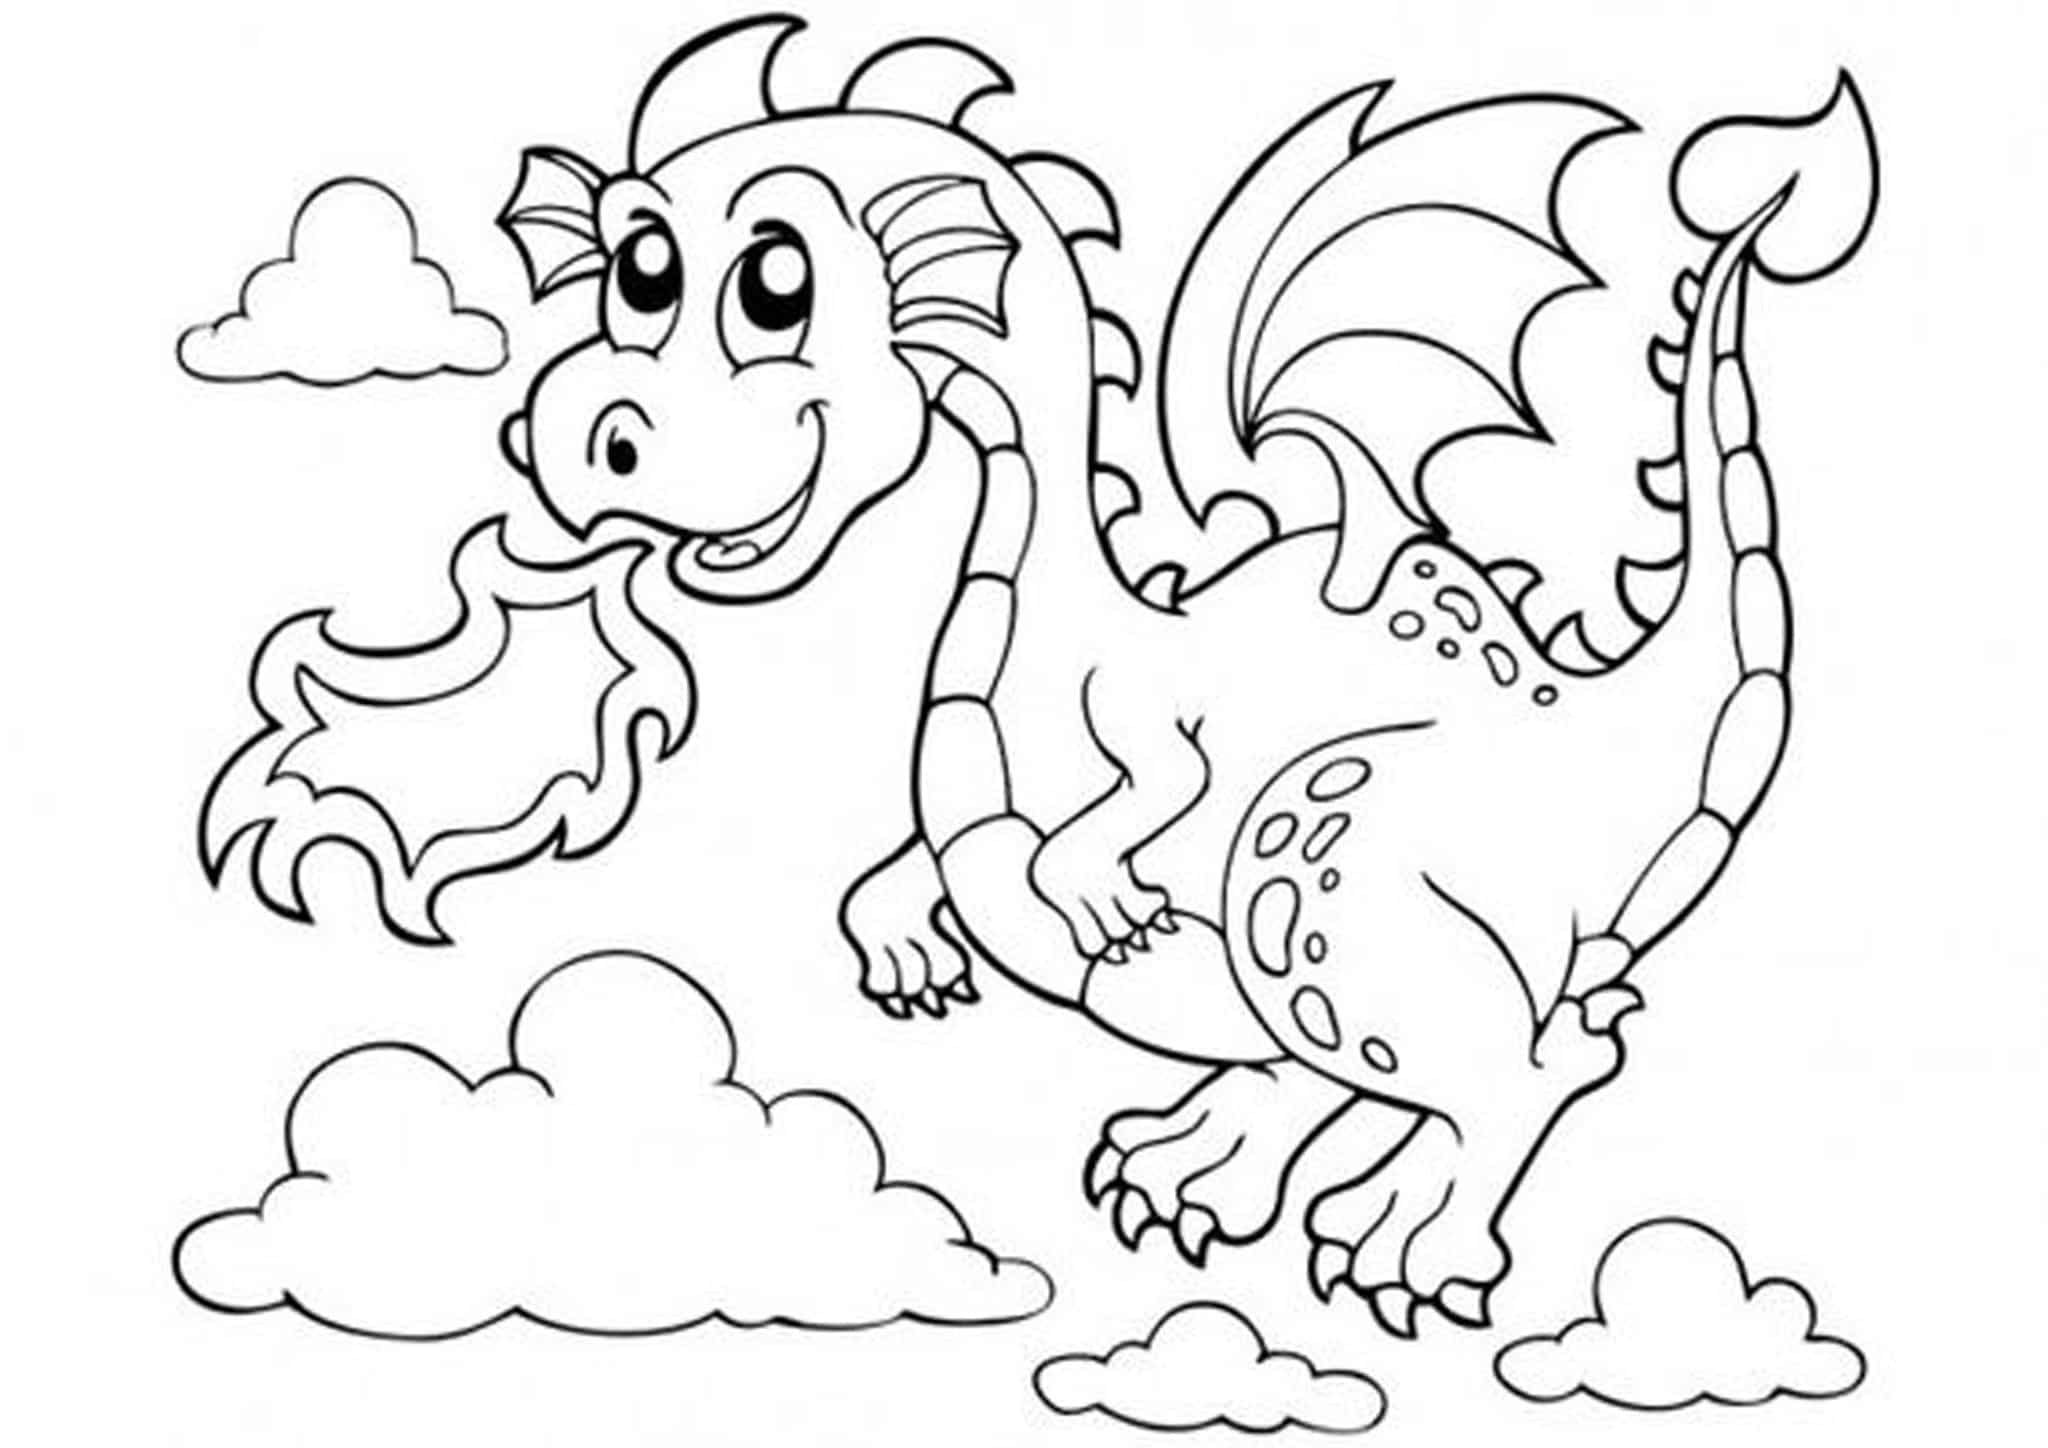 coloring cartoon dragons free easy to print dragon coloring pages tulamama cartoon dragons coloring